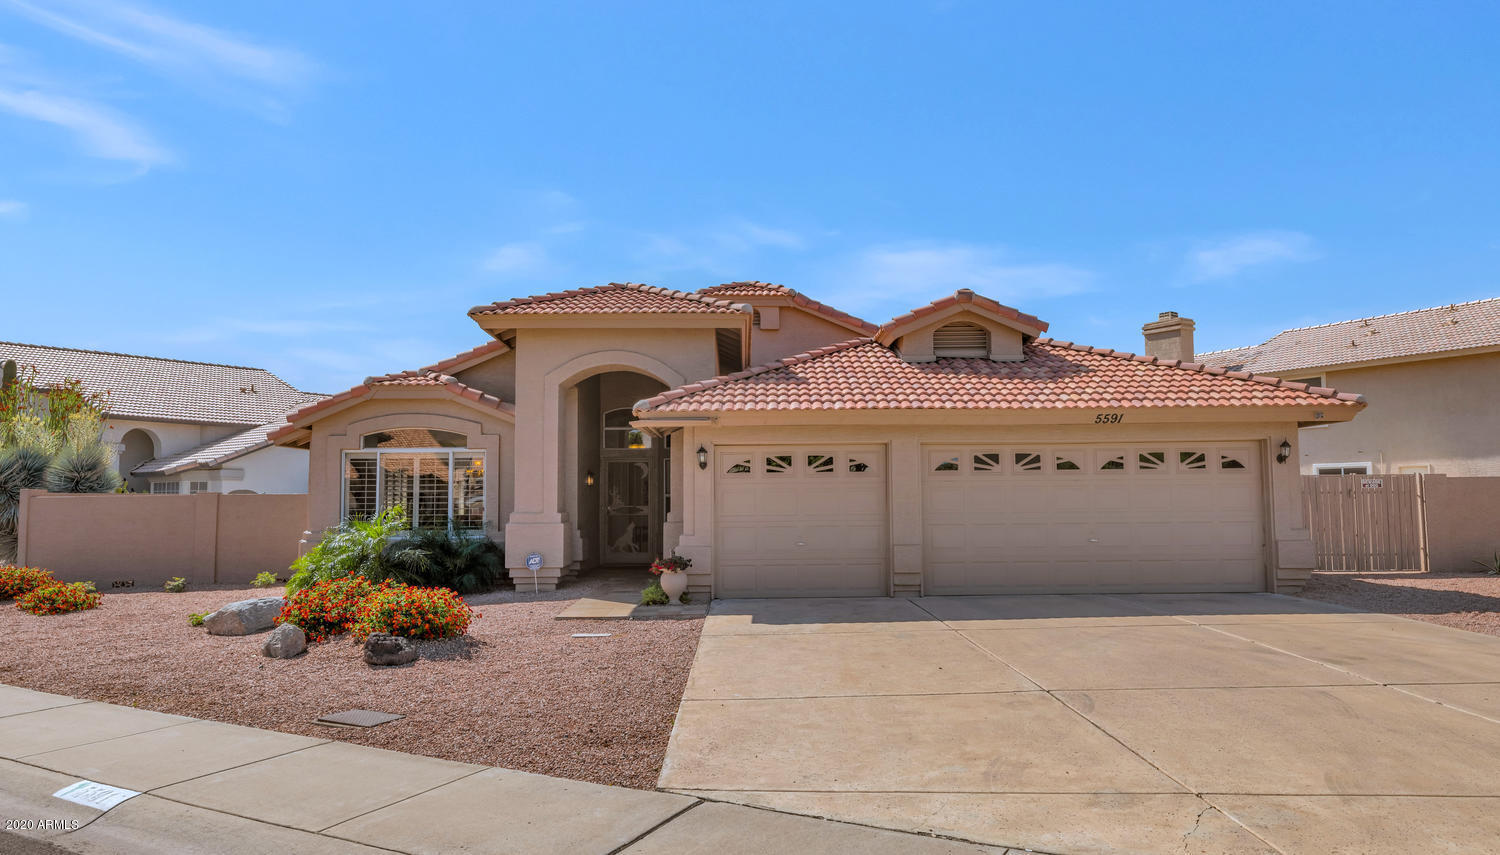 Photo of 5591 W IRMA Lane, Glendale, AZ 85308